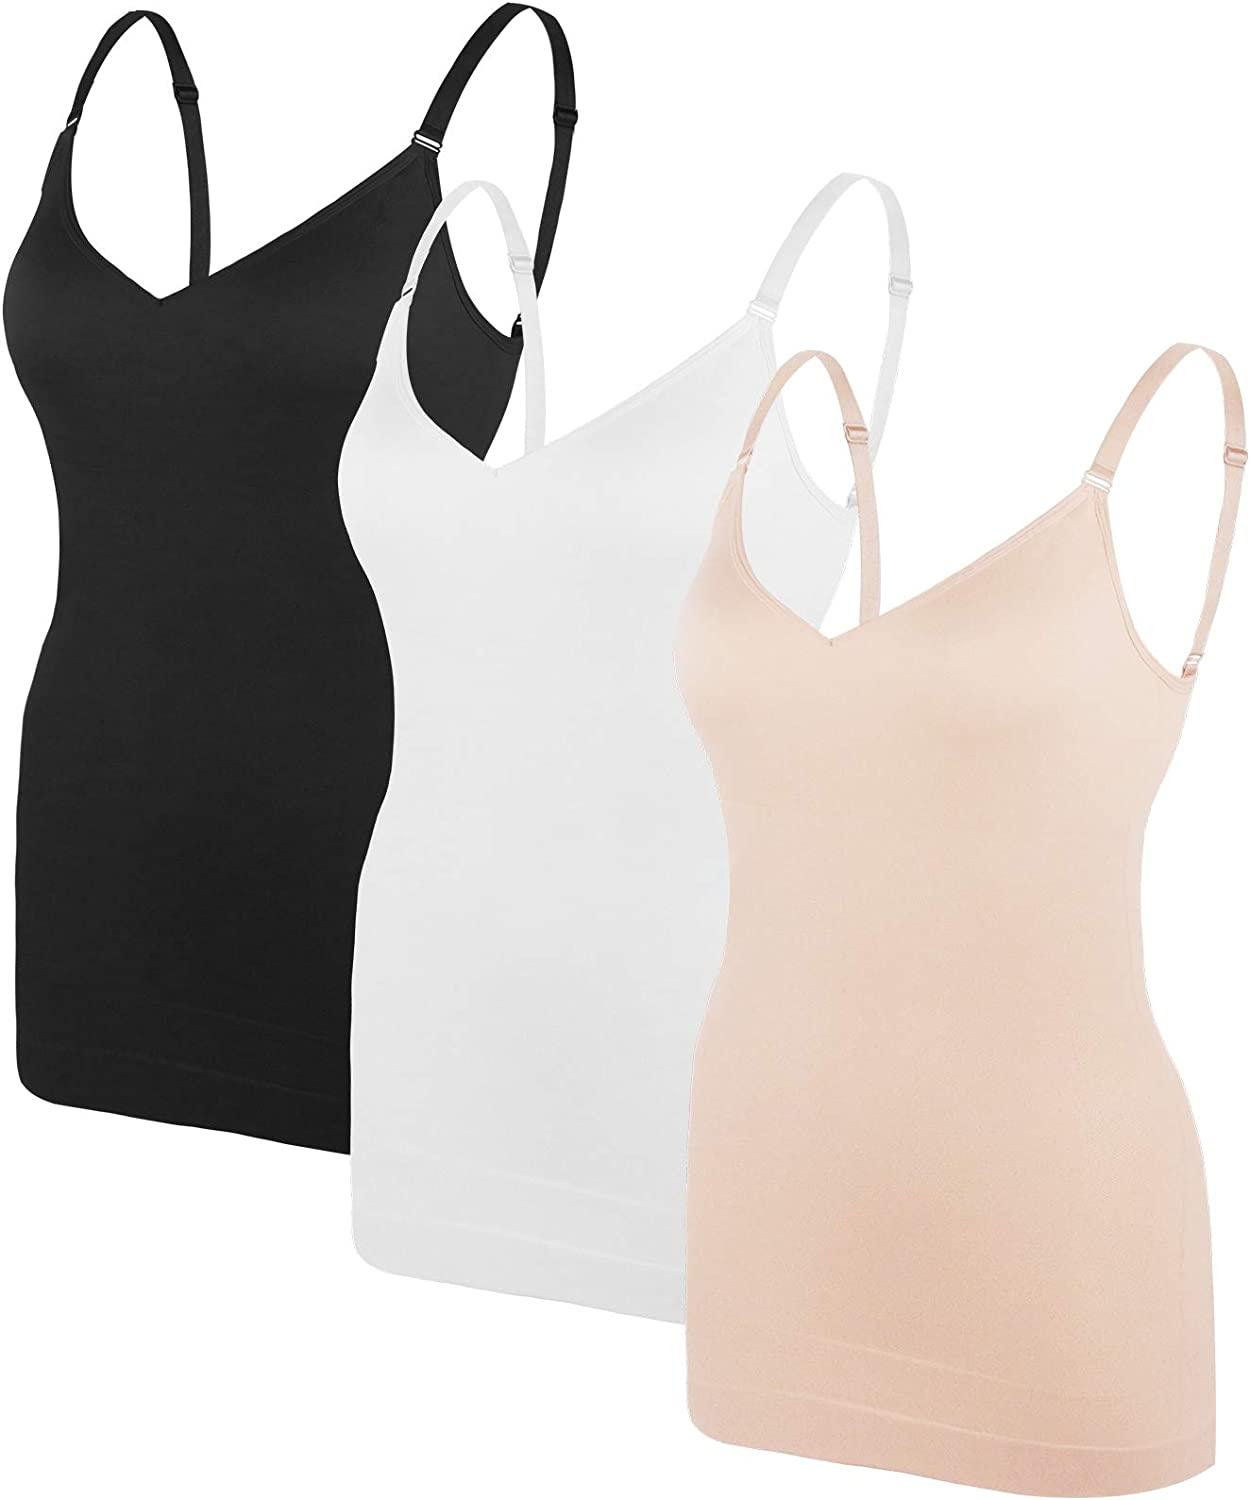 Women's Tummy Control Shaprwear Camisoles Seamless Compression Tops 3 Pack